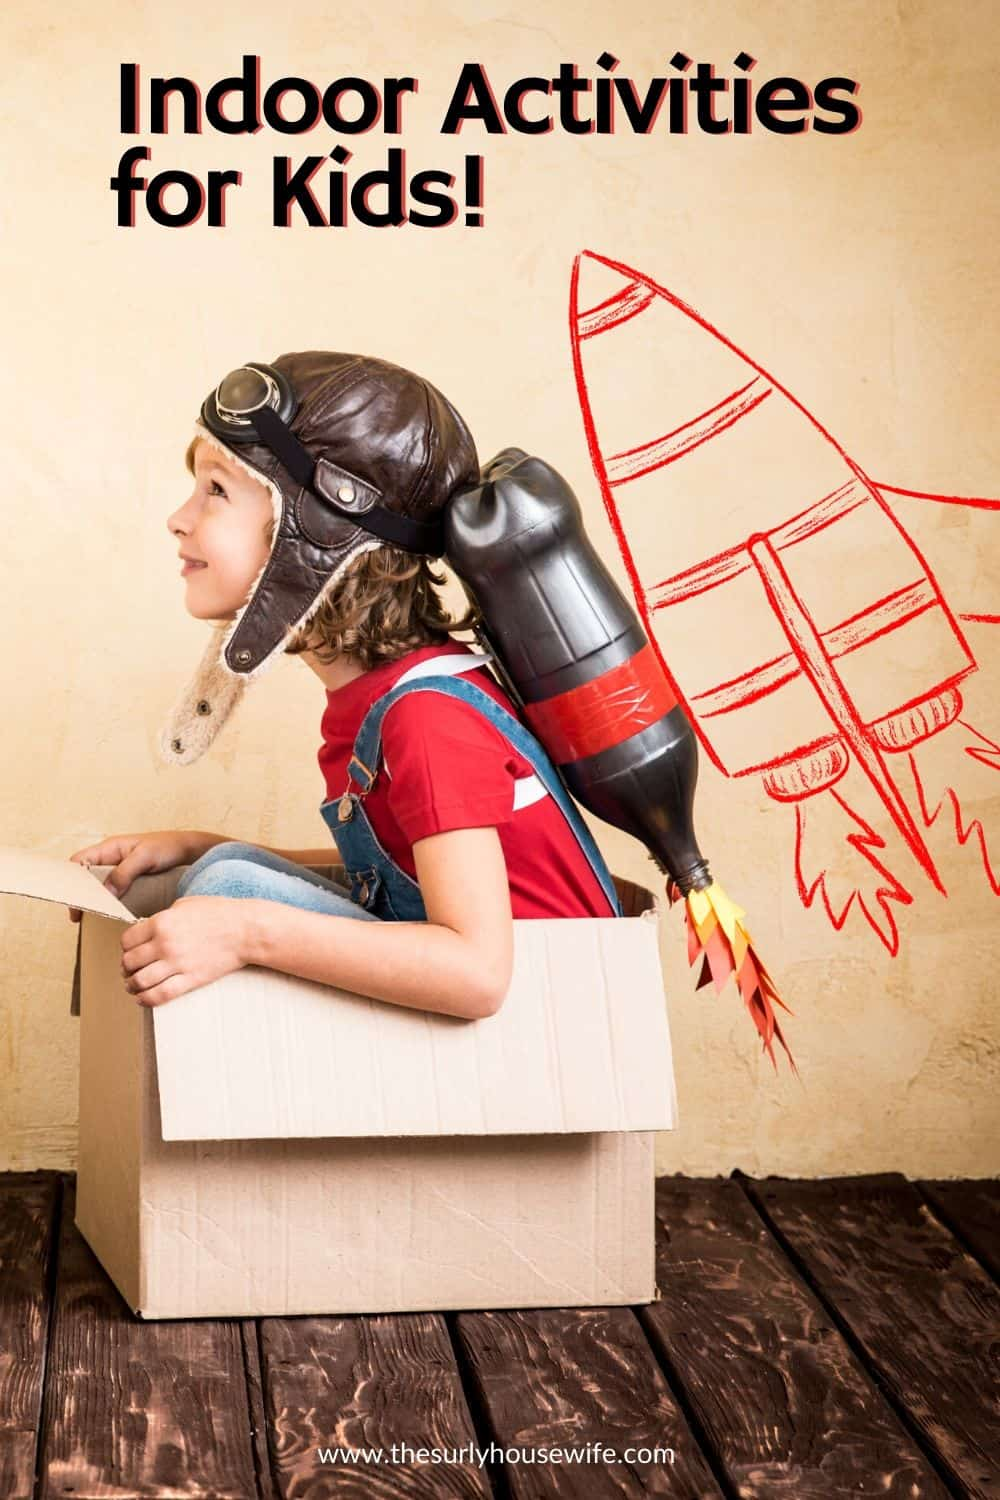 Whether it's due to the weather or an emergency situation, kids stuck at home get bored. Check out this post for over 200 fun indoor activities for kids at home.